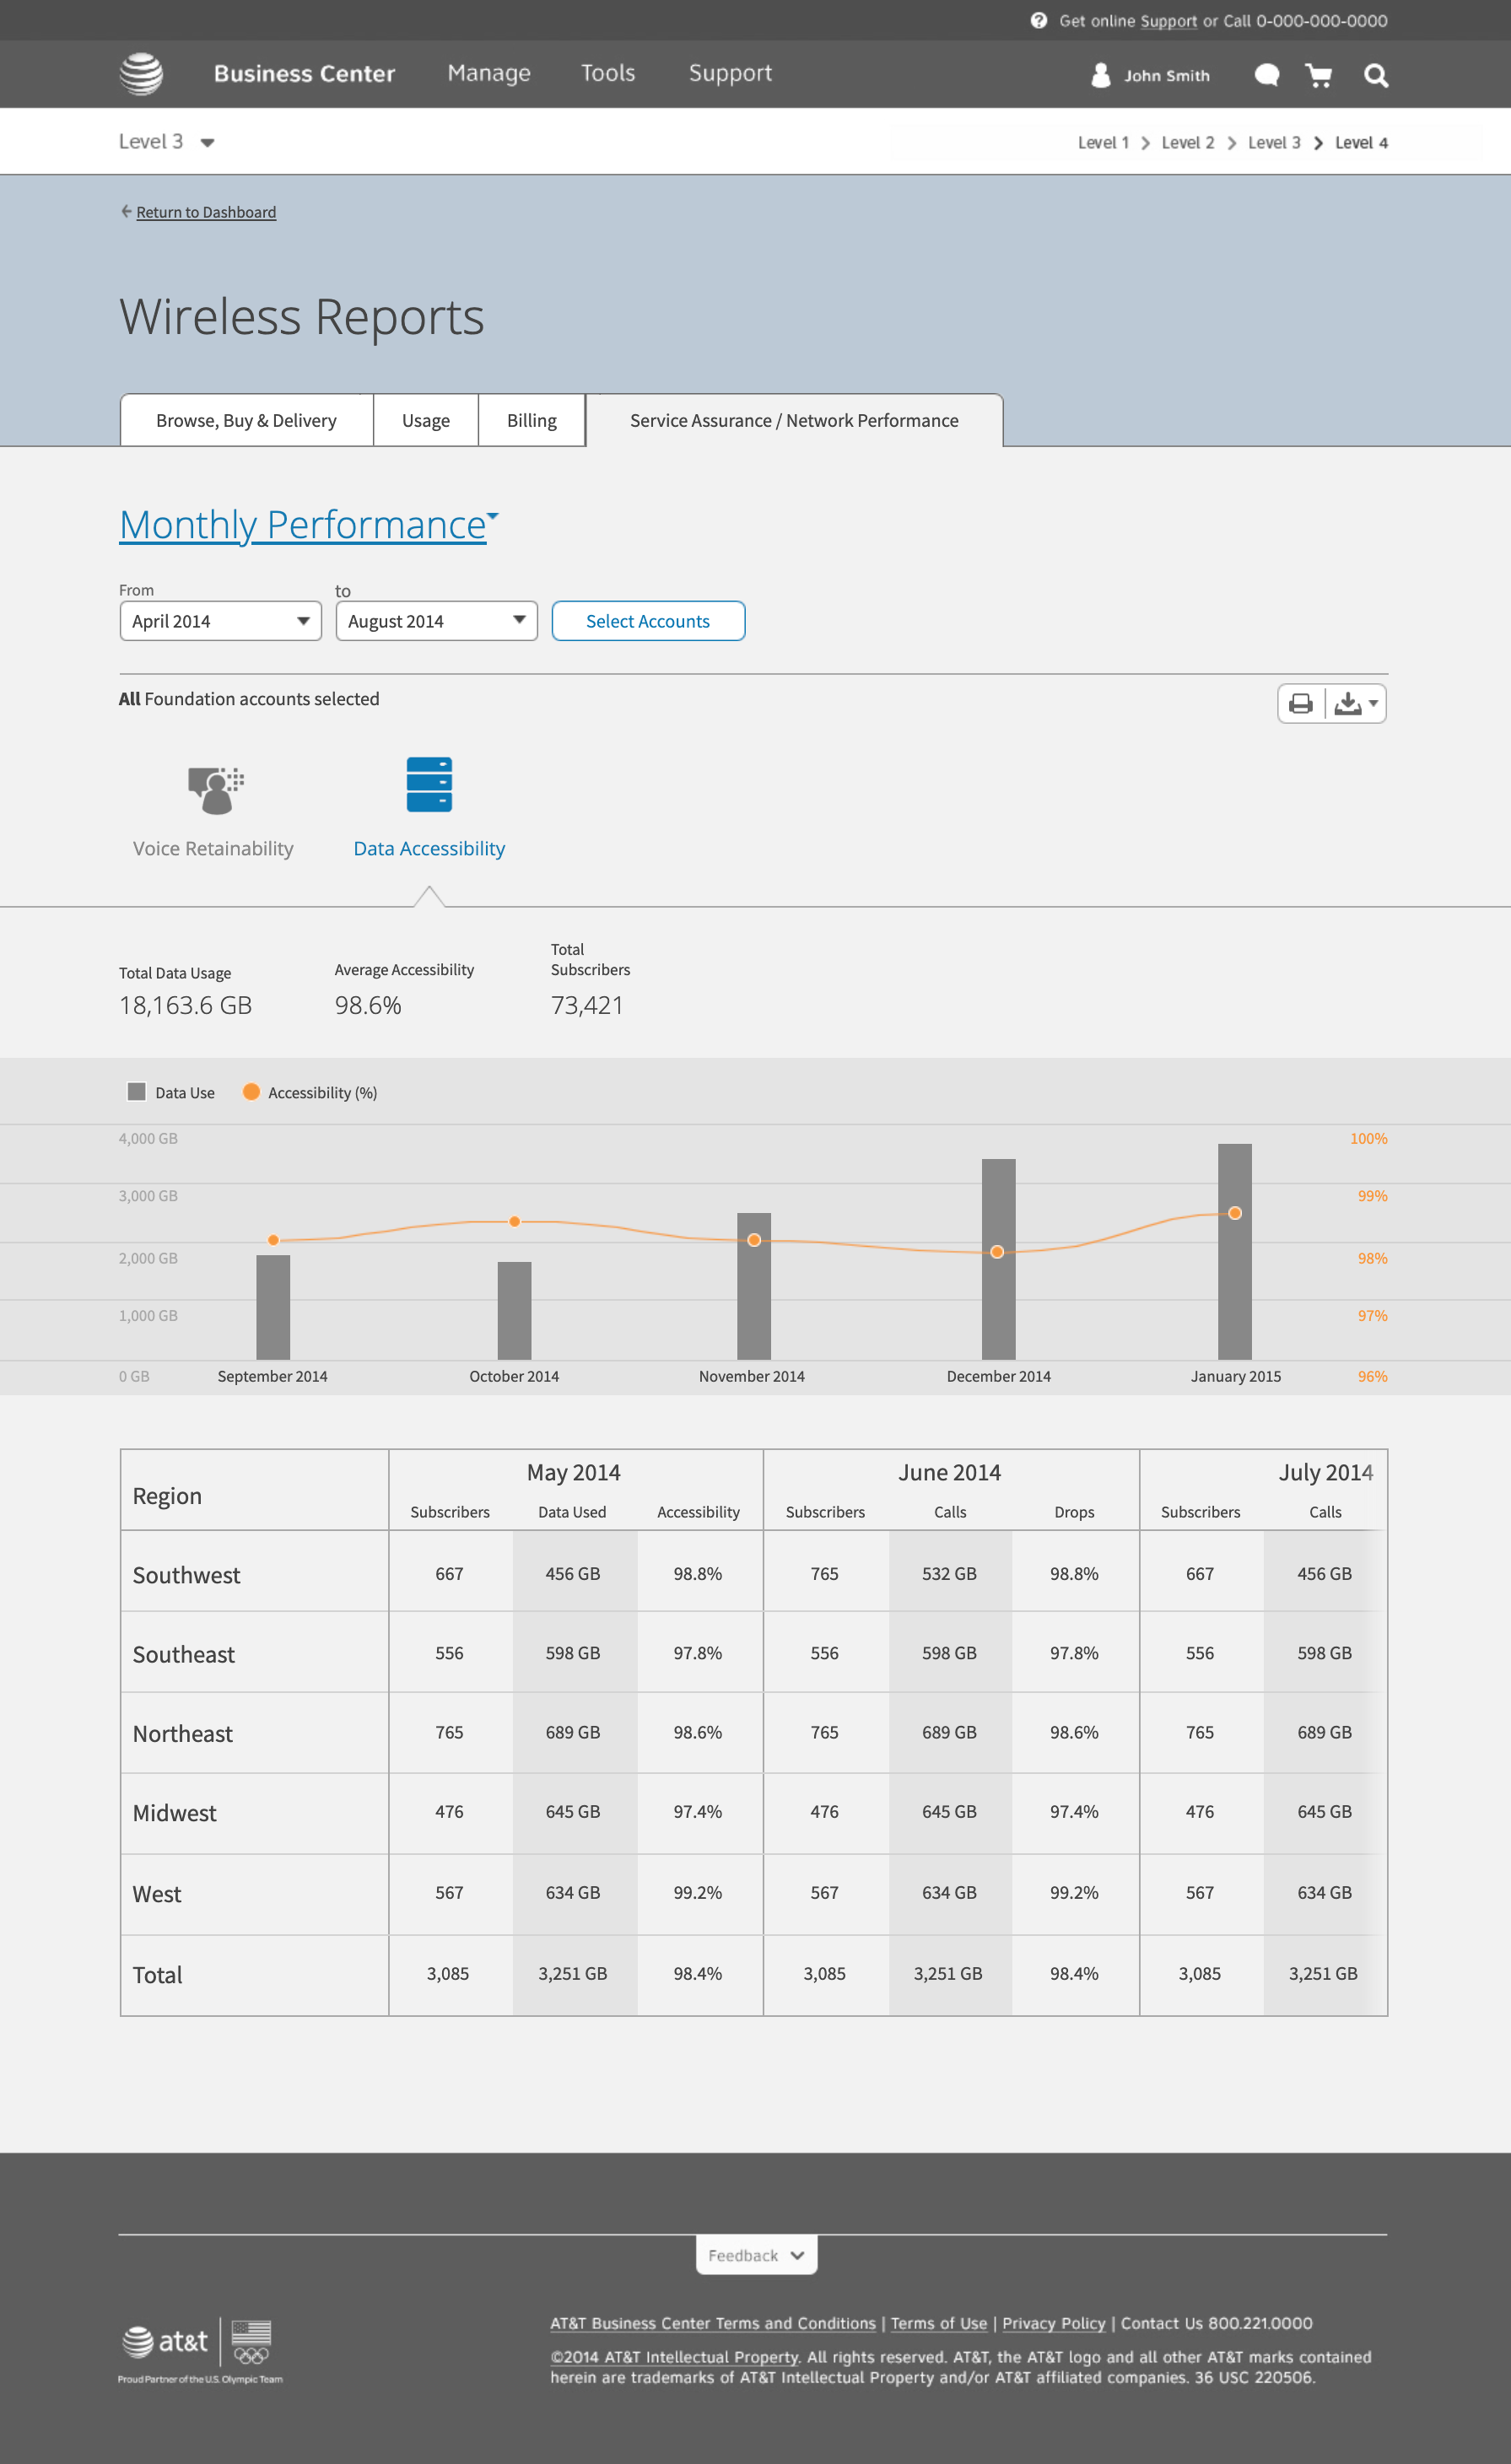 data accessibility view of the monthly performance report